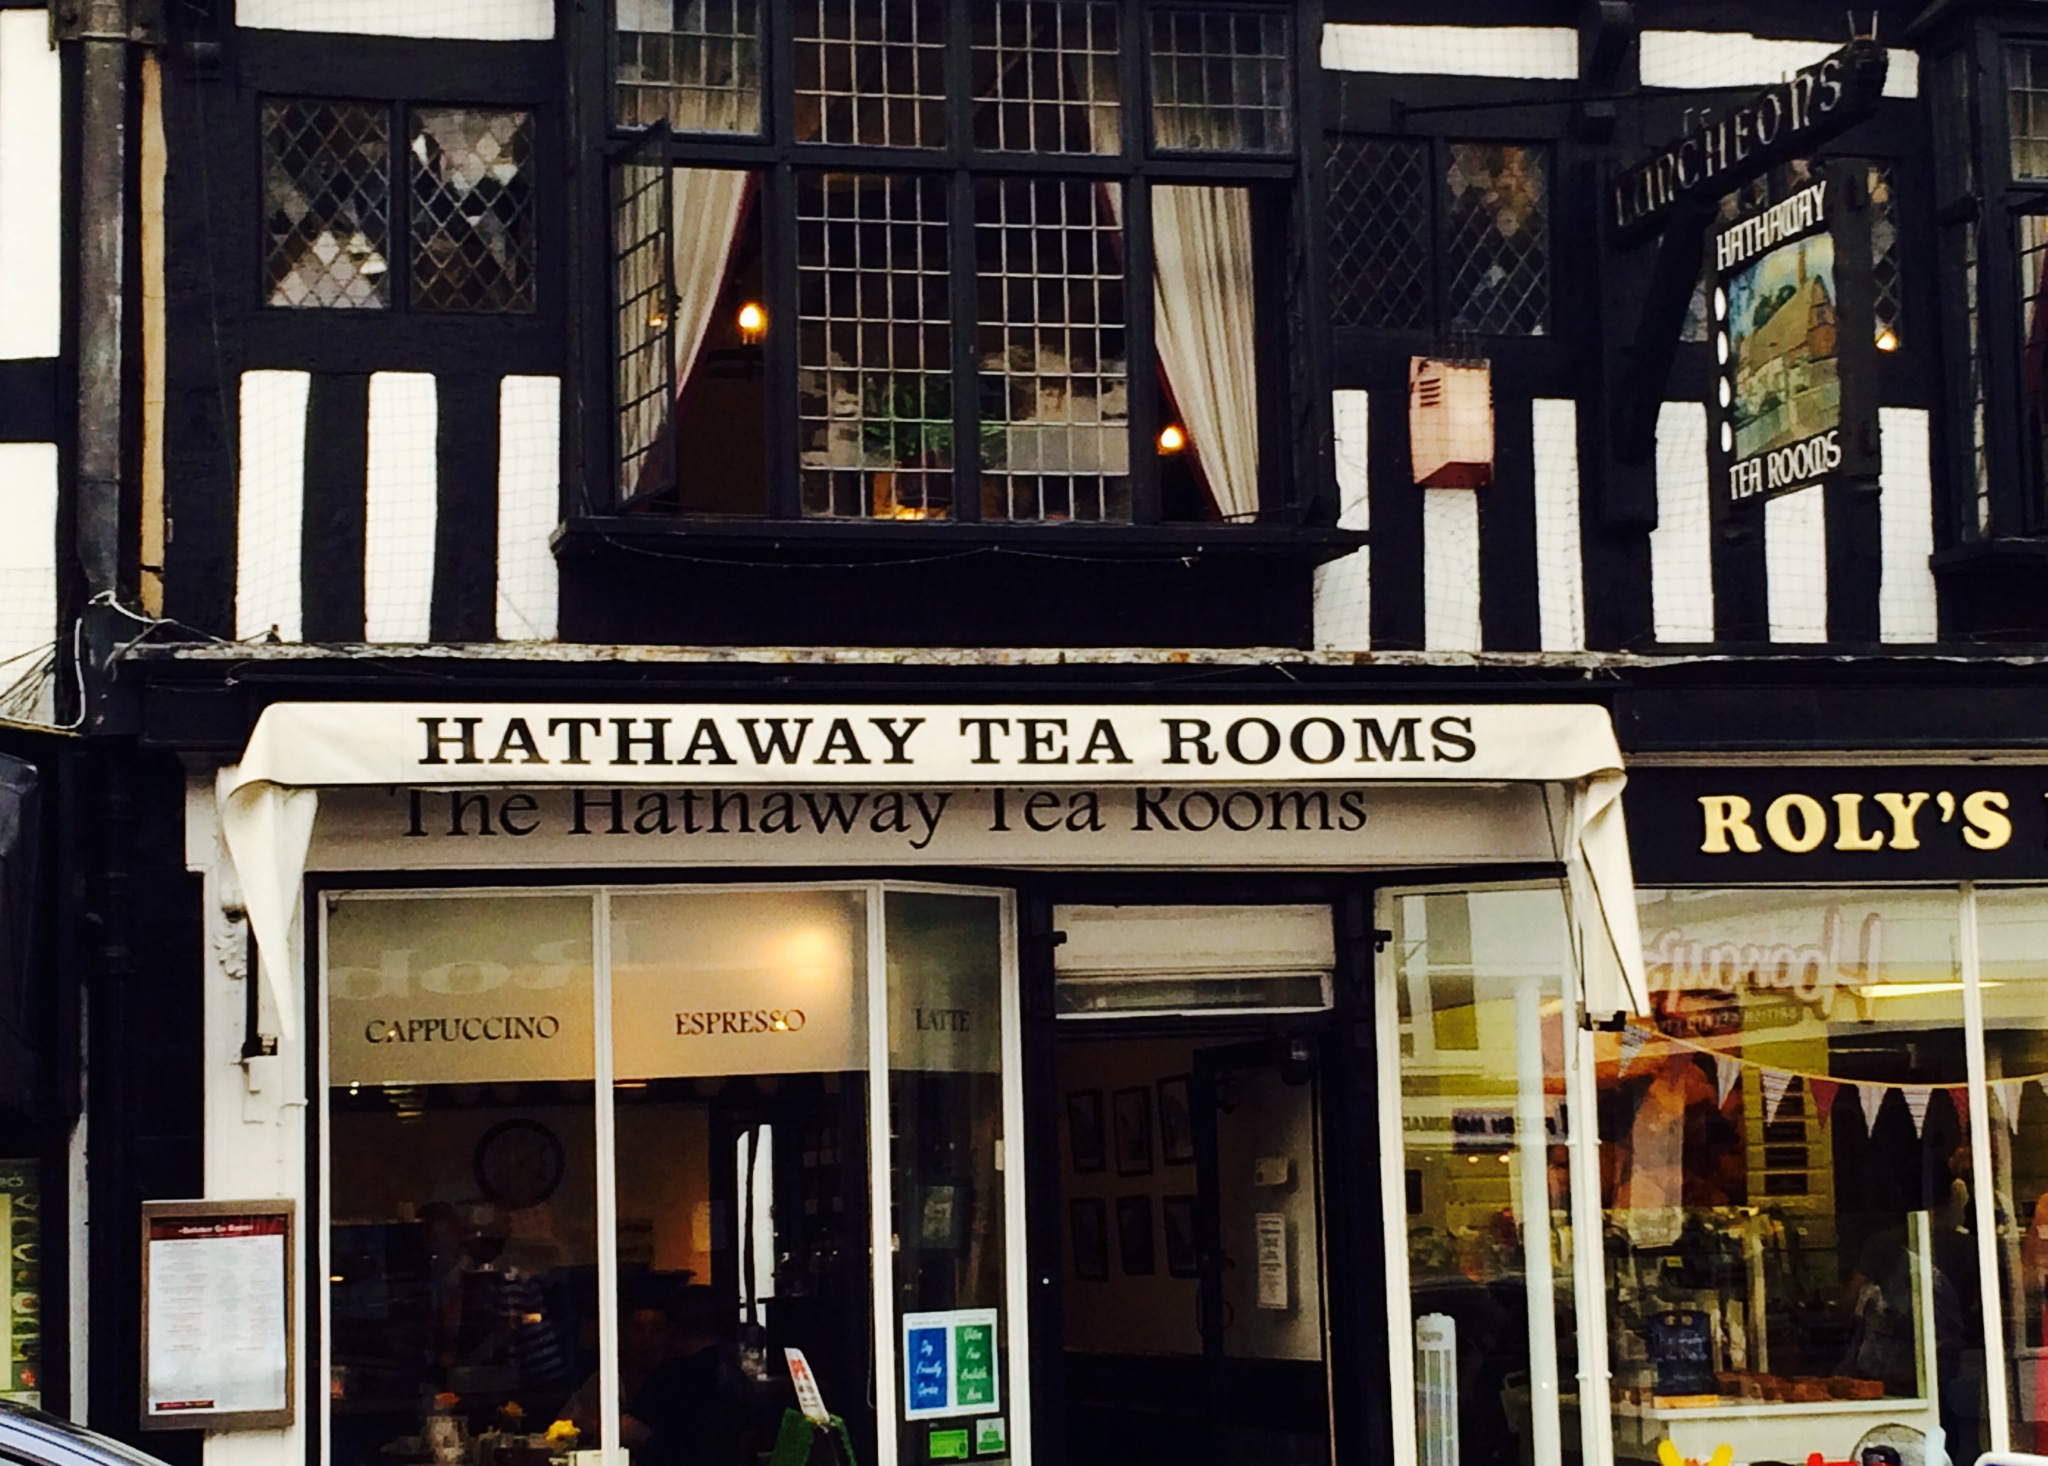 hathaway tea rooms scones